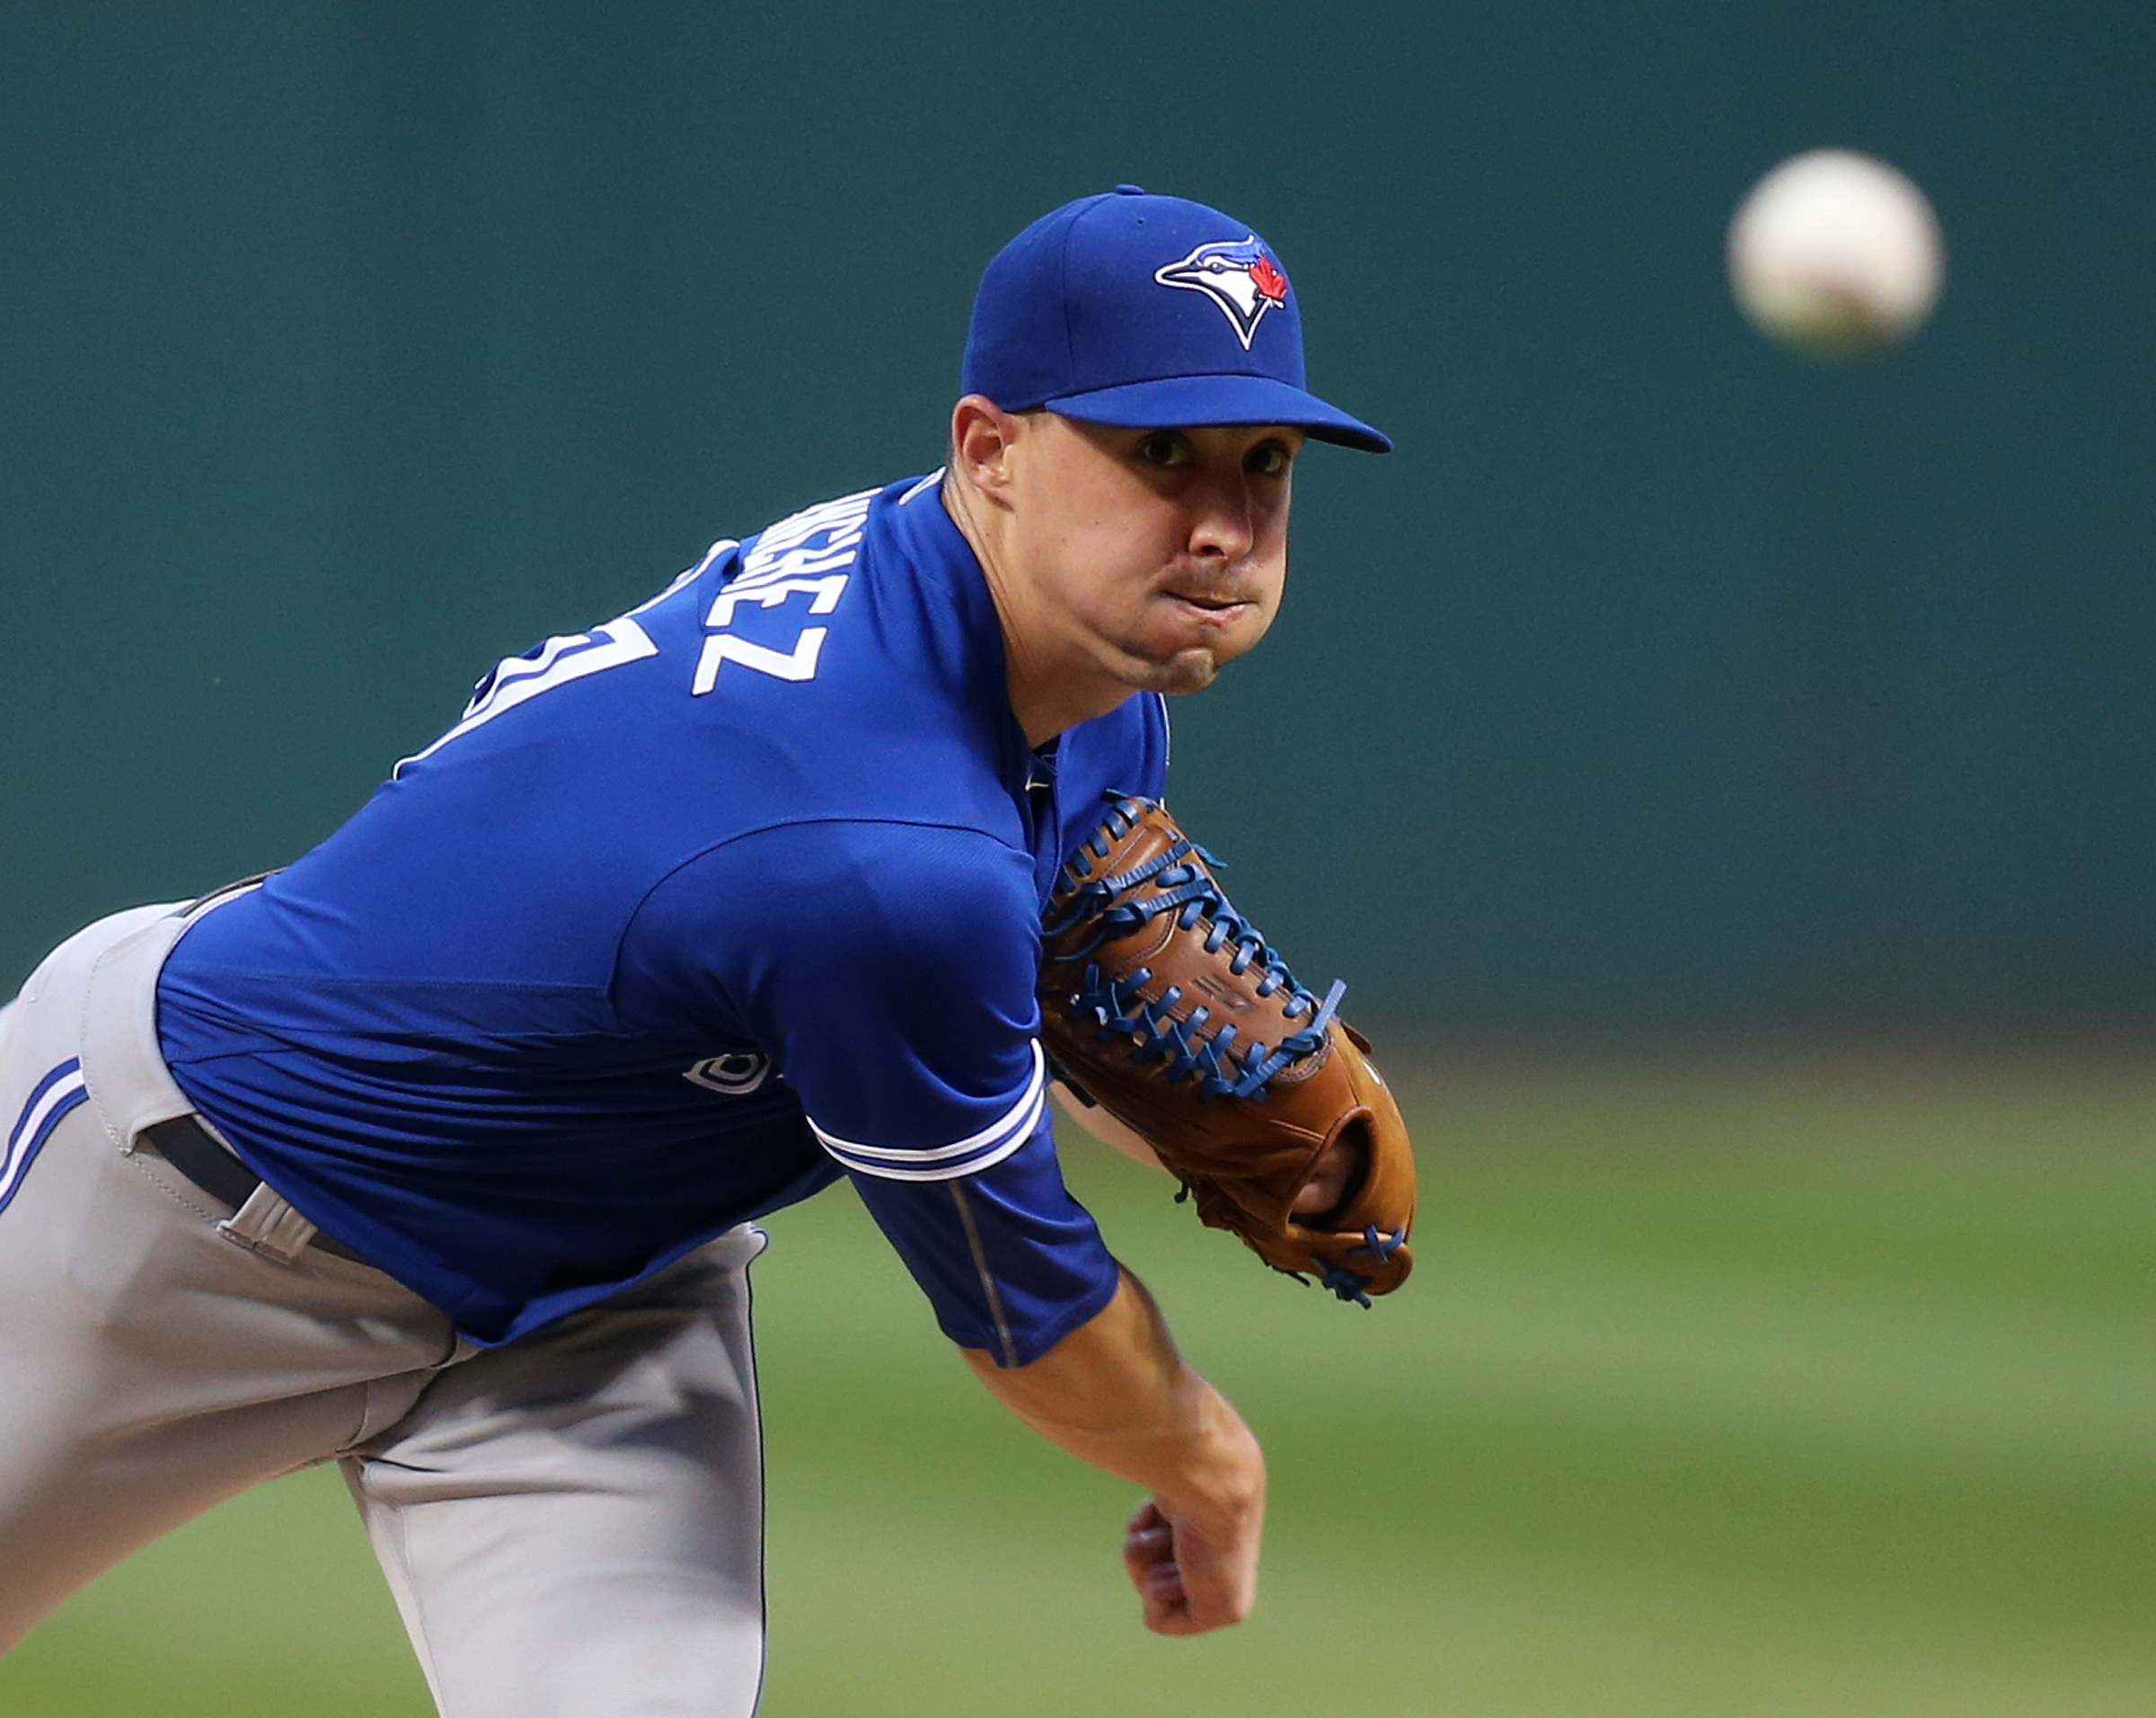 Toronto Blue Jays starting pitcher Aaron Sanchez throws during the first inning of a baseball game against the Cleveland Indians, Saturday, Aug. 20, 2016, in Cleveland. (AP Photo/Aaron Josefczyk)